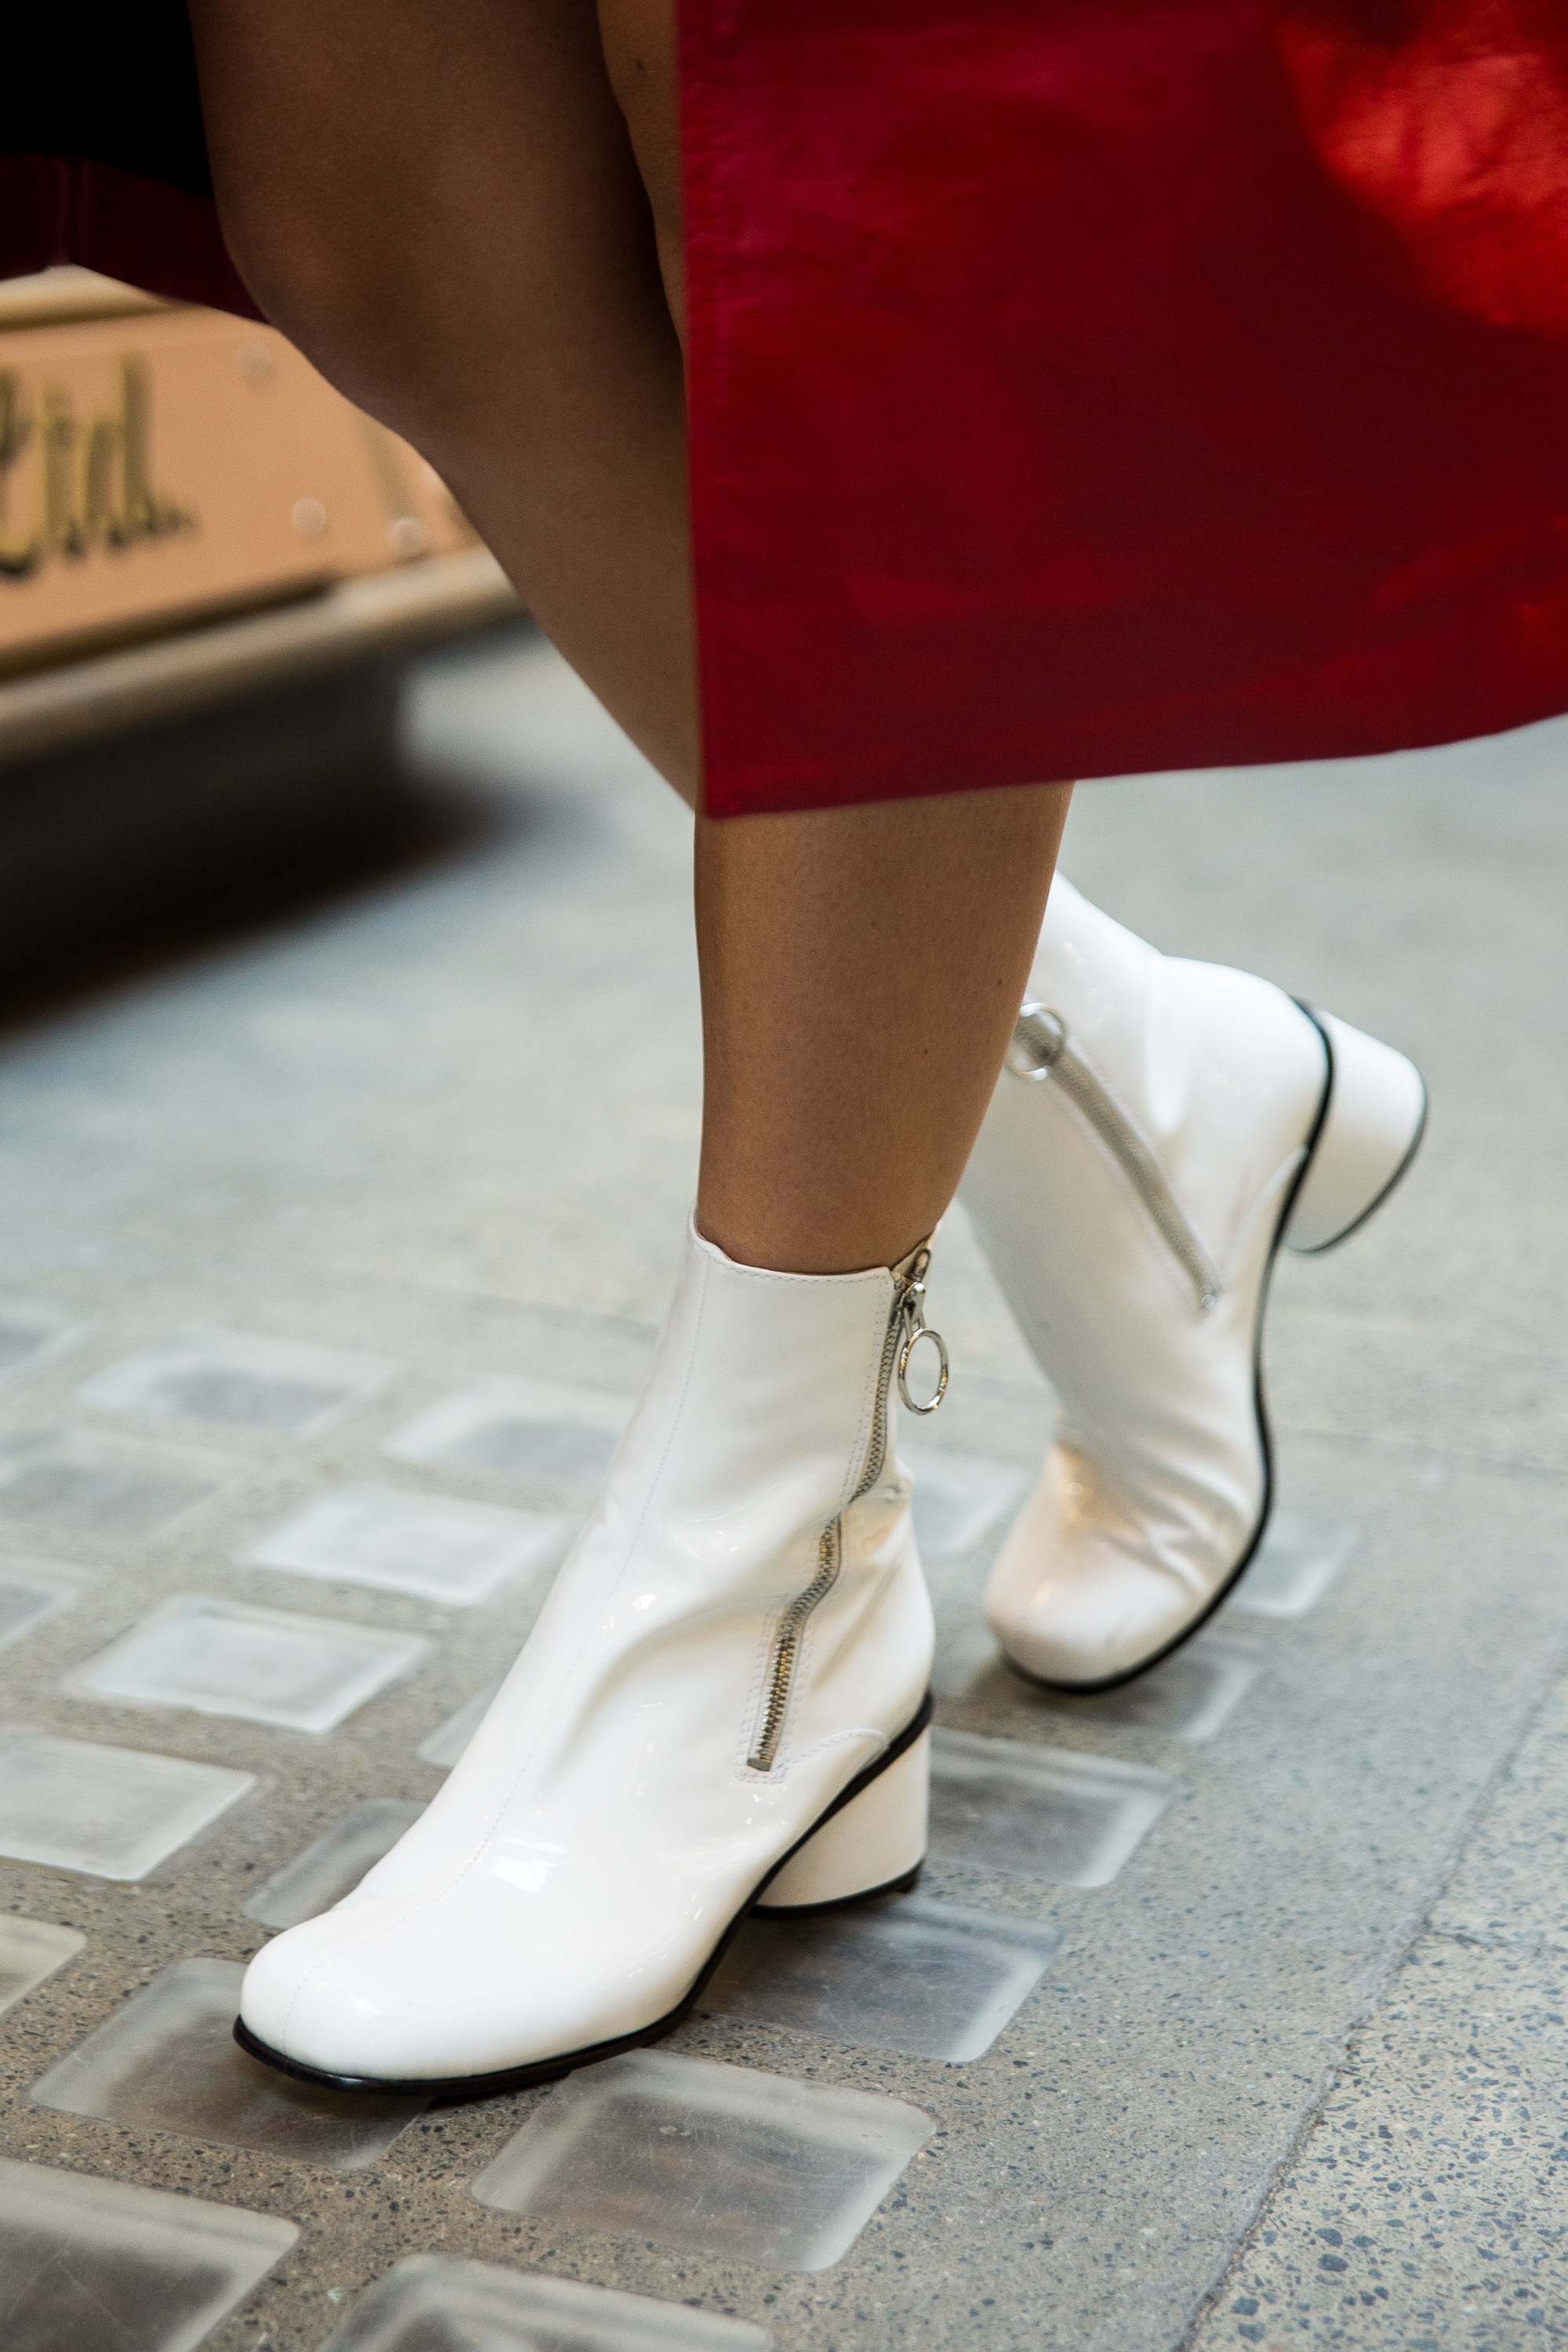 MEGAN ELLABY WEARS MARC JACOBS CRAWFORD BOOTS